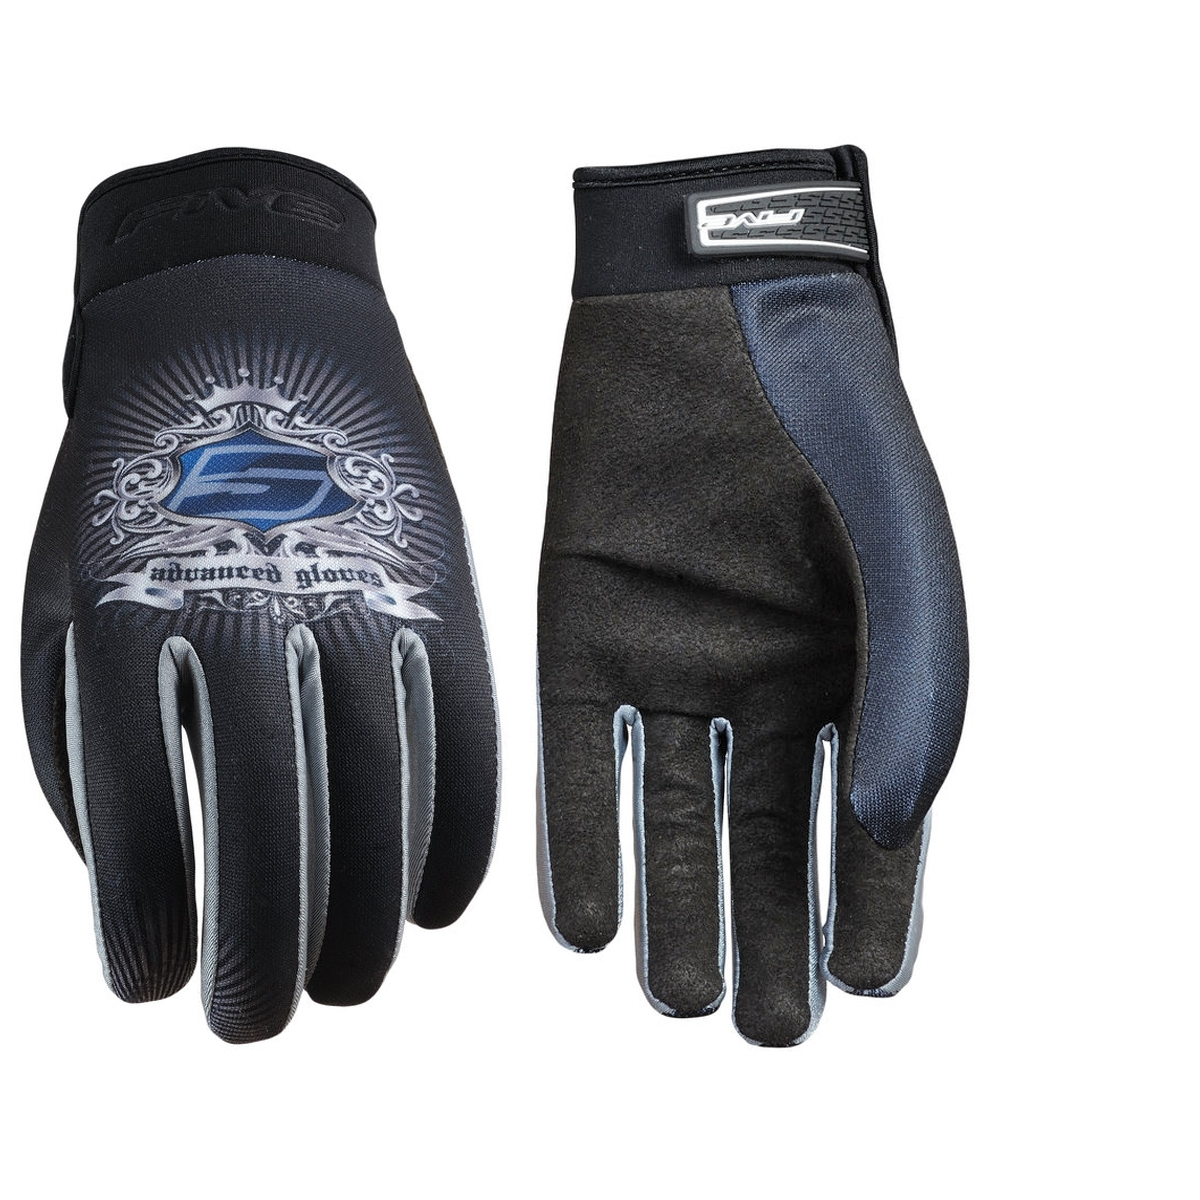 Gants Five Planet Fashion Blaze - XXL